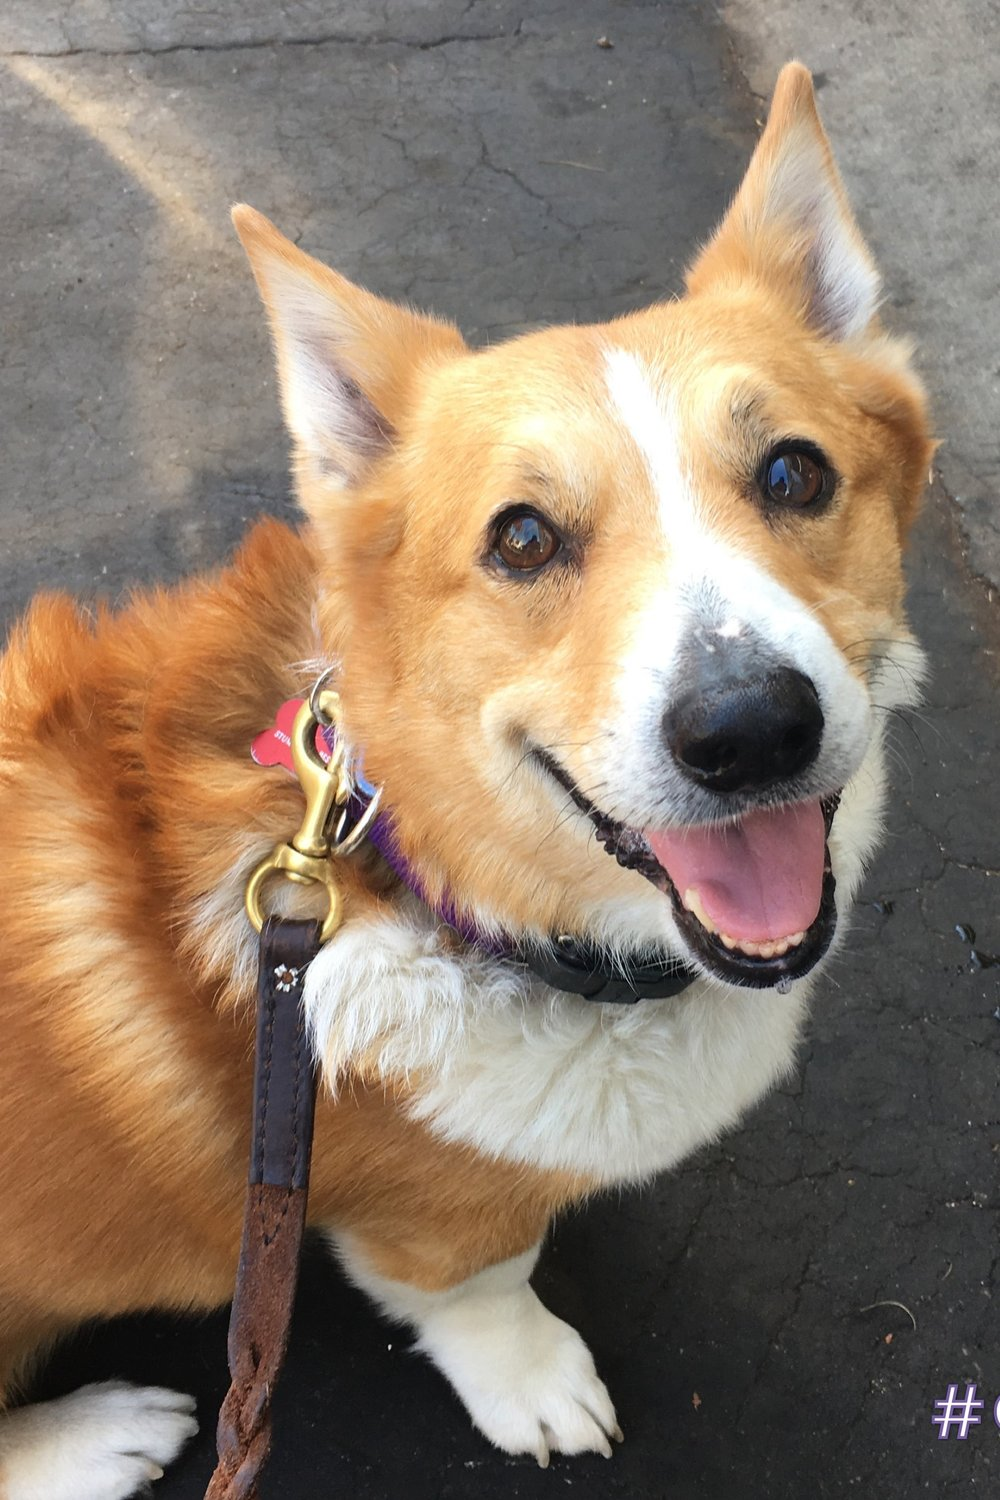 LESTER (Bite History; has bite inhibition) Male, 7.5 years old. Owner surrender due to nipping toddler. Adopted then returned due to biting while. guarding and herding humans. Dog Reactive; Working on Socialization. Has allergies and hip dysplasia. Crate and potty trained. Walks well on leash. Knows basic commands. Needs corgi savvy and experienced owner. Best as only dog with single individual. Not good for first time owner. Not good for households with children. Requires glucosamine supplements for remainder of his life.